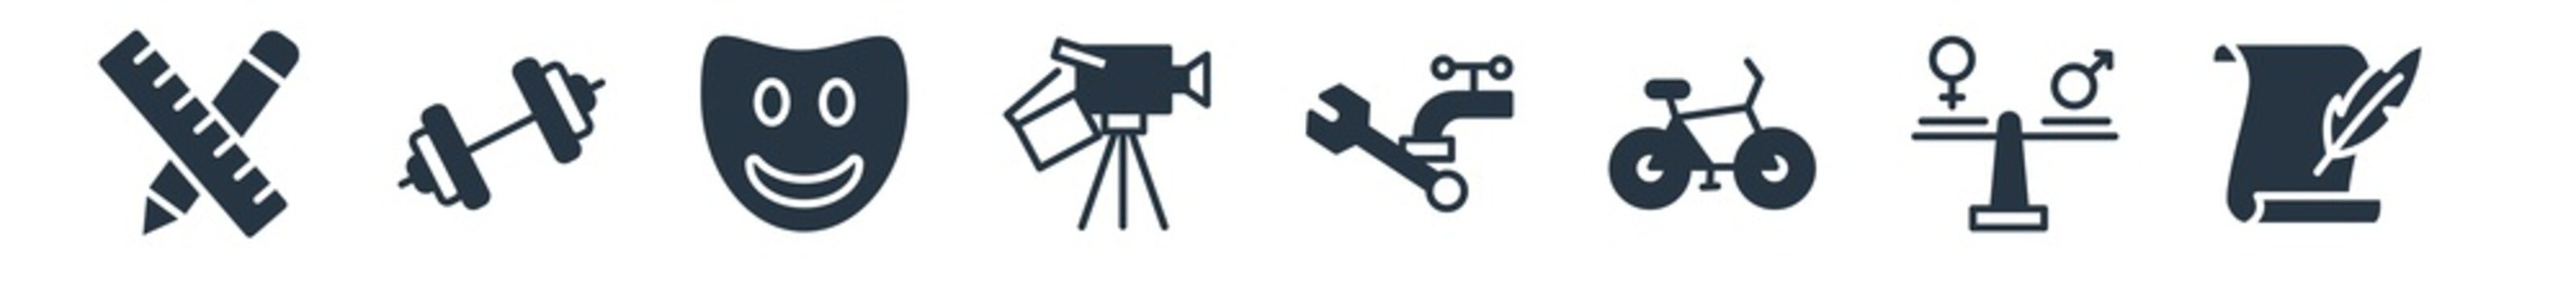 people skills filled icons. glyph vector icons such as writer, equality, cyclist, plumber, filmmaker, emotions, body building sign isolated on white background.